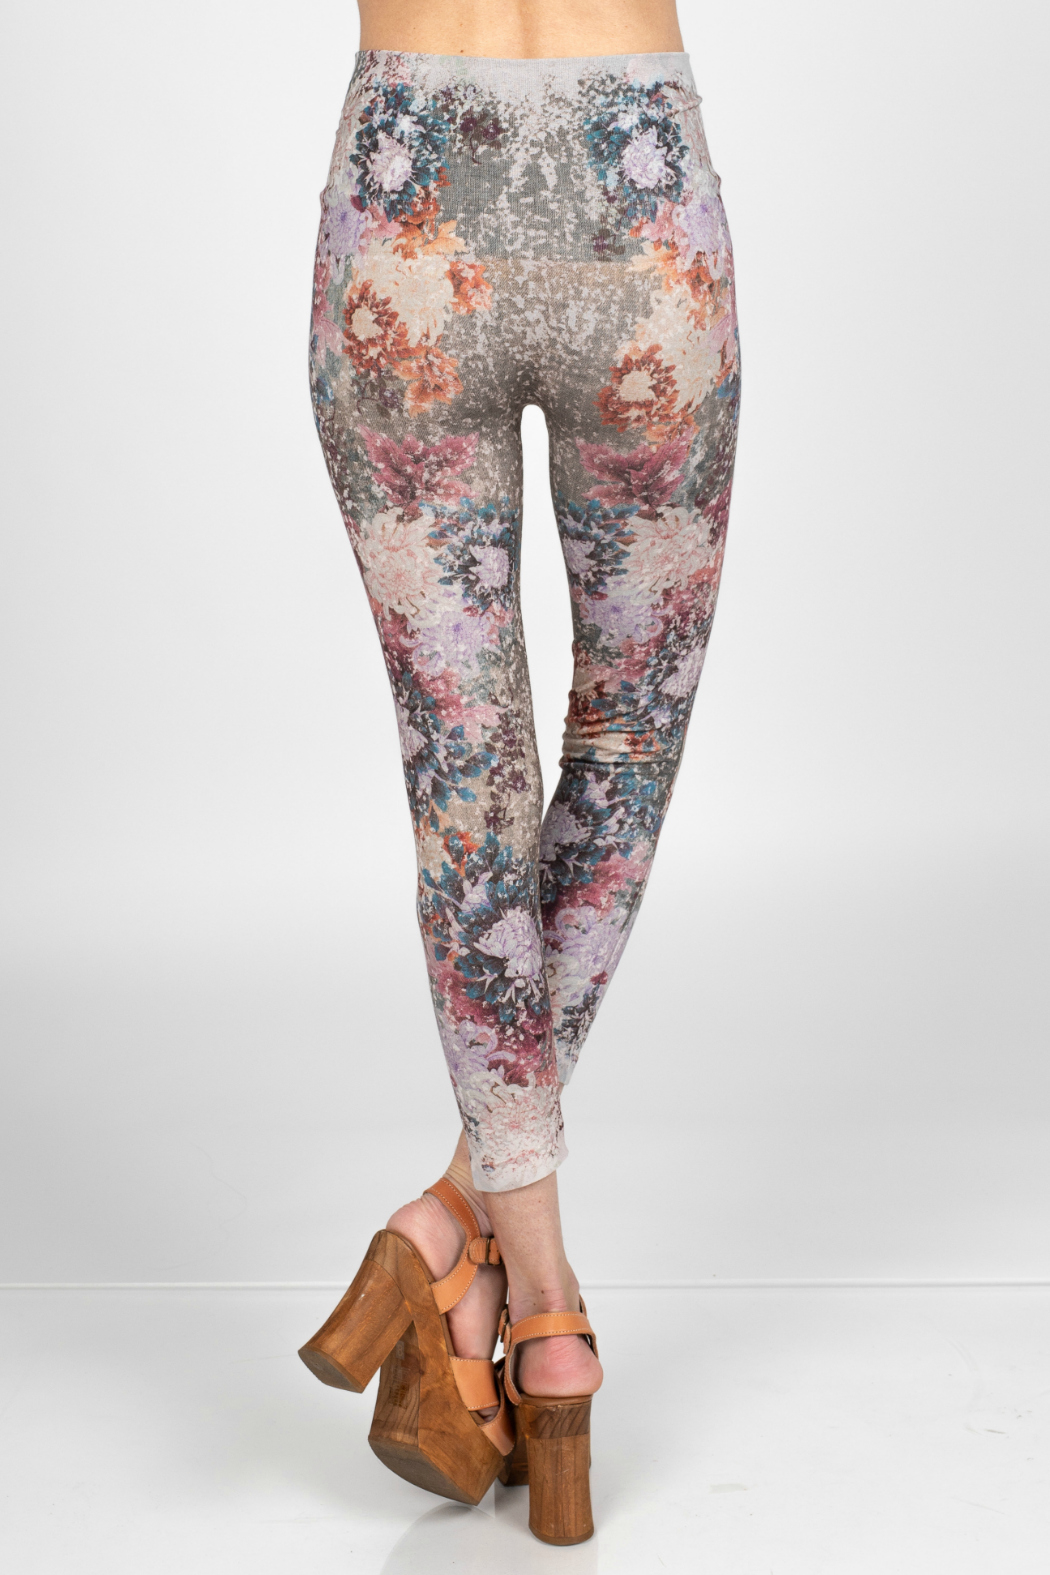 M. Rena Leggings with dancing peonies sublimation print - Side Cropped Image